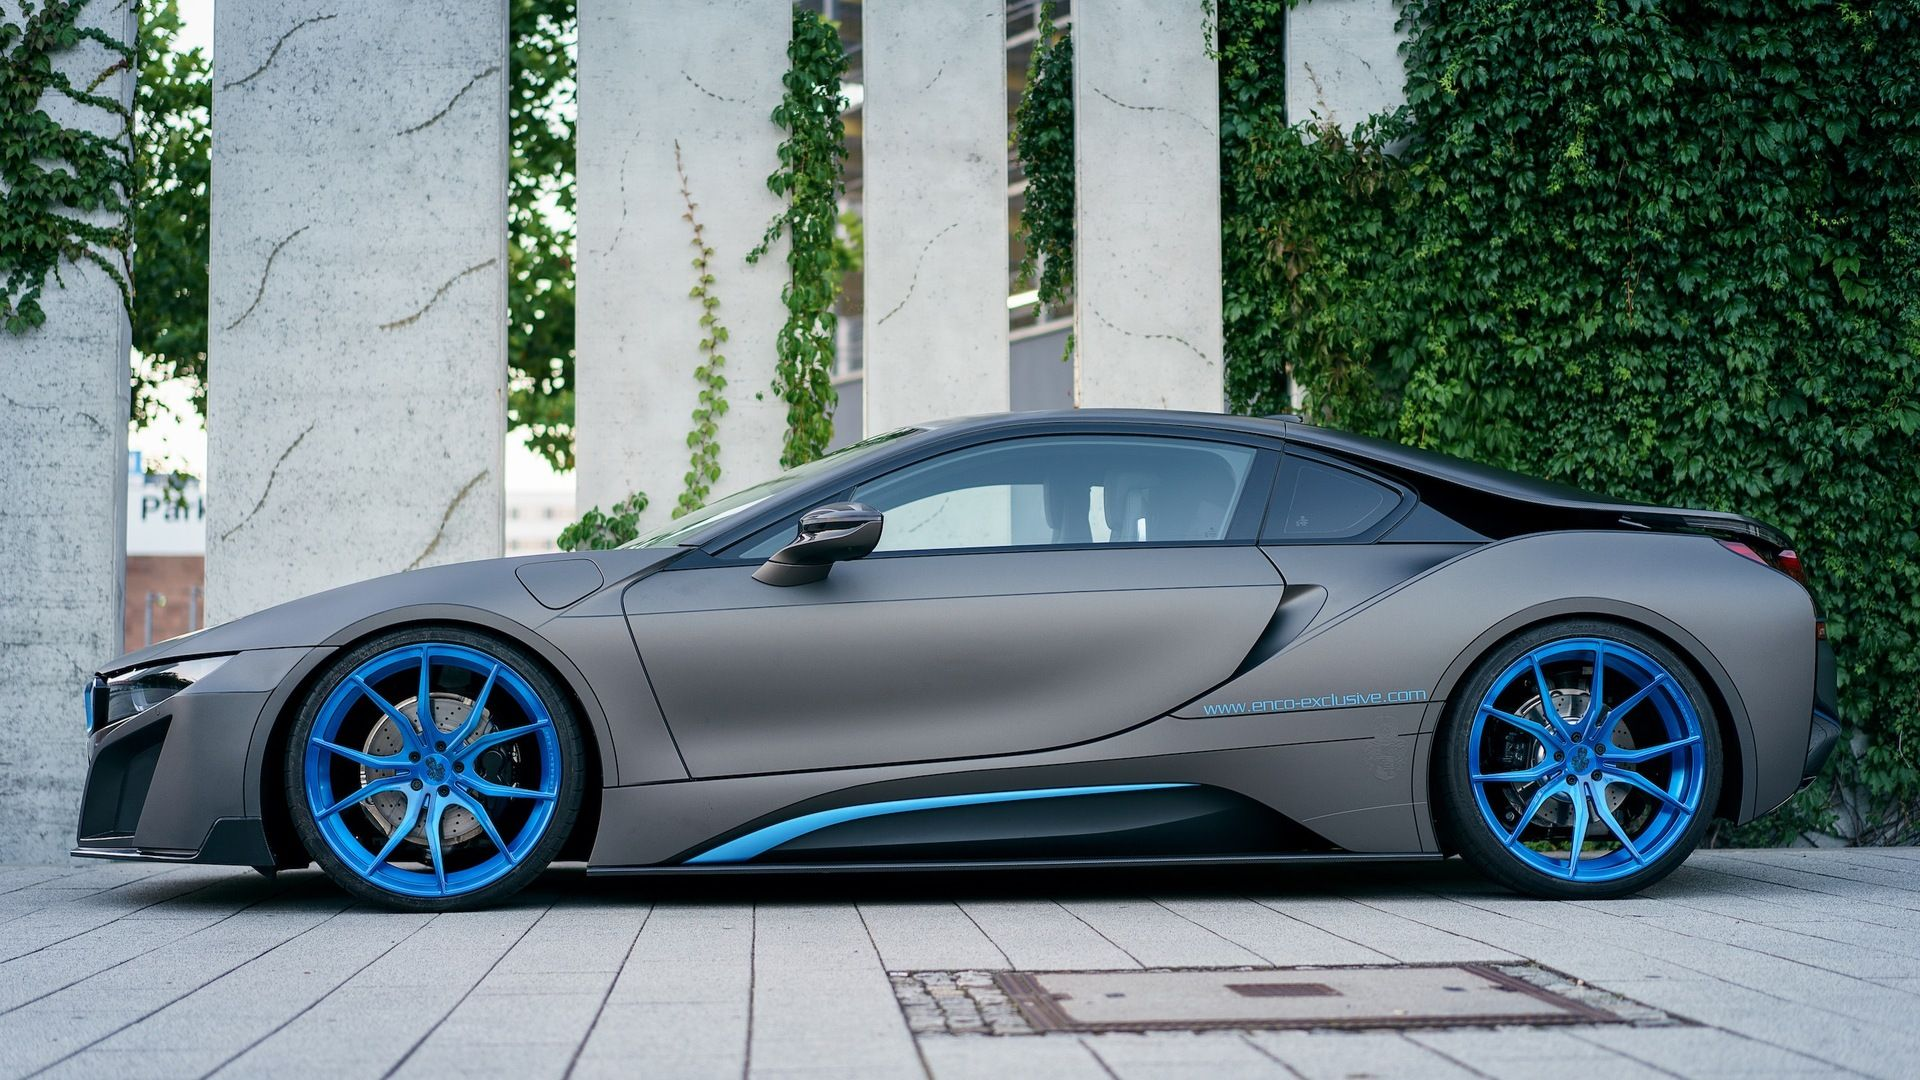 Bmw I8 Wrapped In Matte Gray Gets One Off Photo Session Bmwcoop